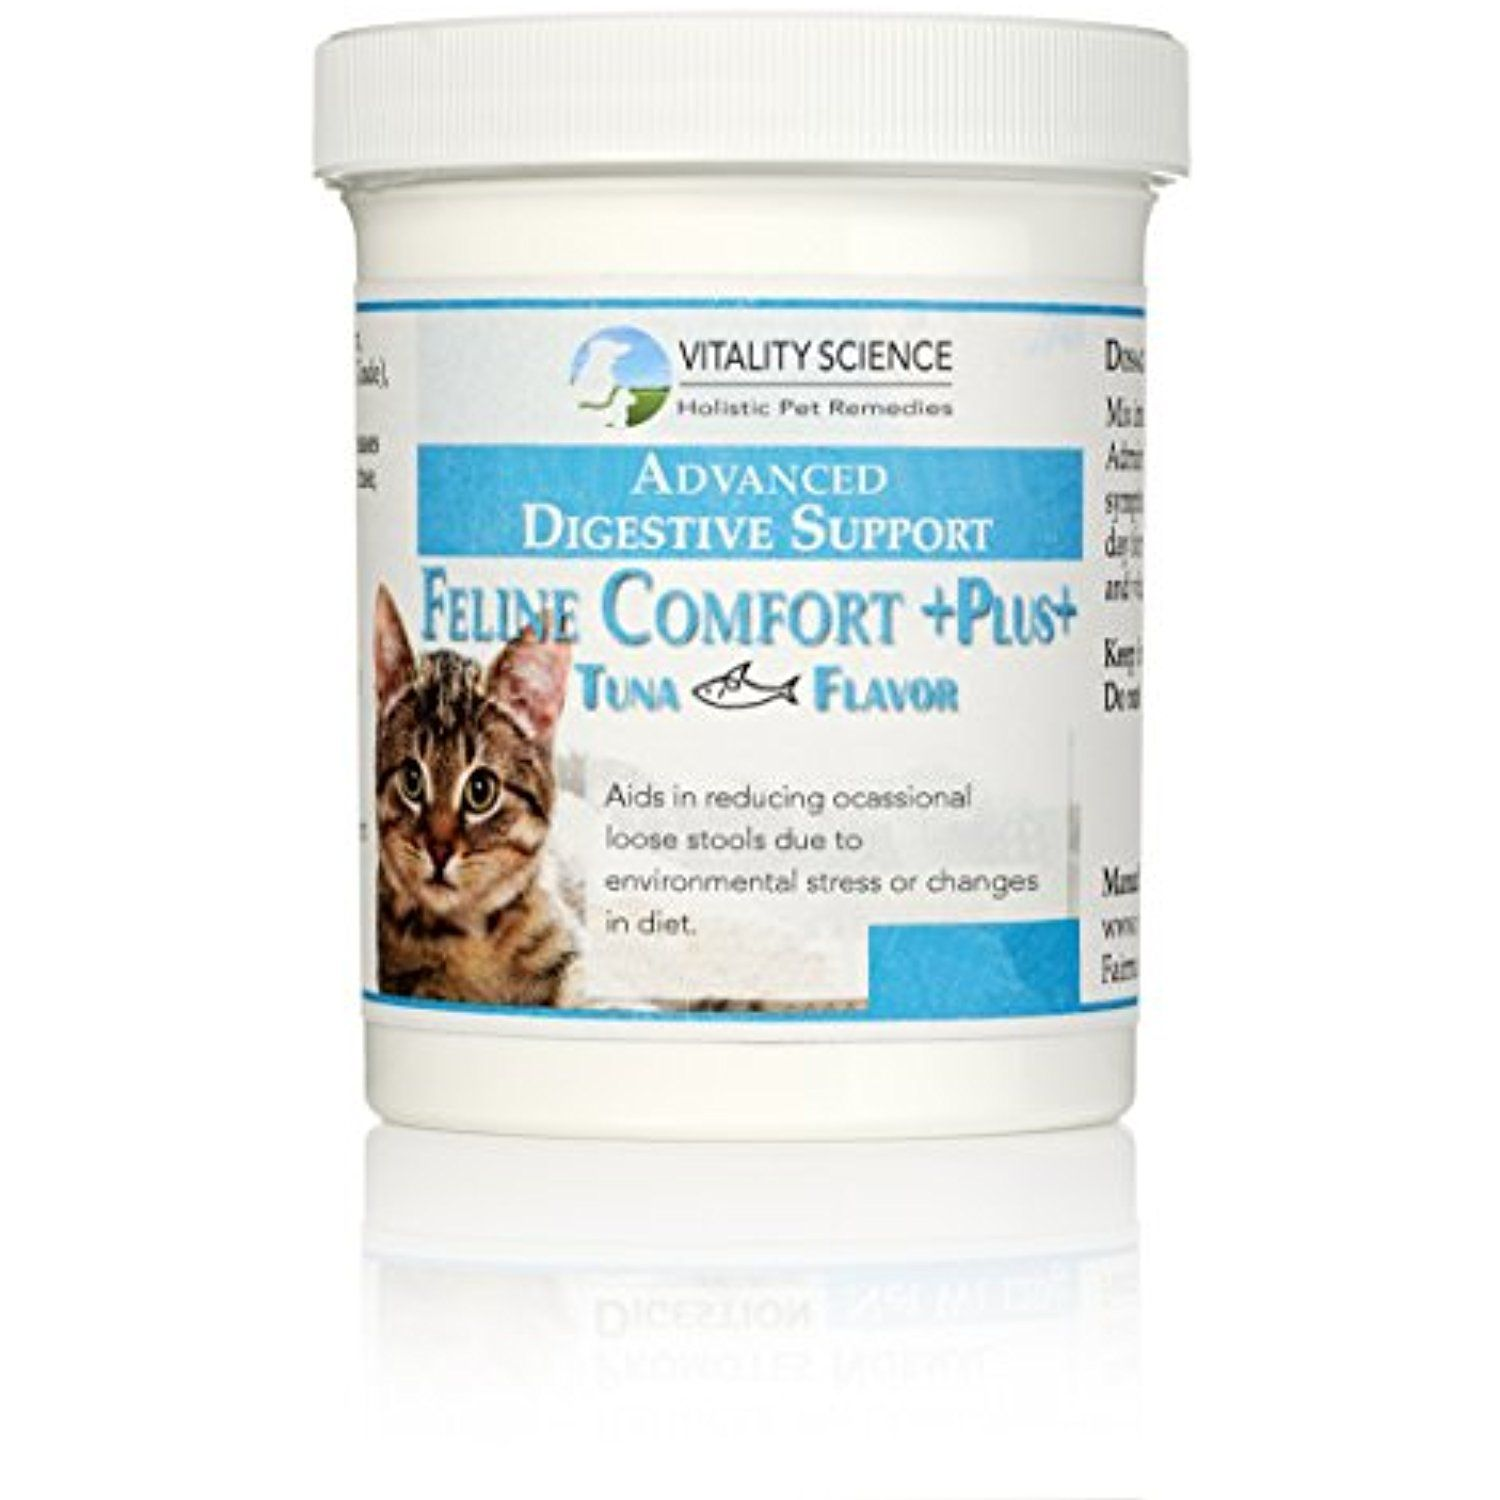 Feline Comfort Plus Seafood Small Extra Drying Digestive Aid For Cats For More Information Visit Image Link Digestion Aid Digestion Remedy Digestion